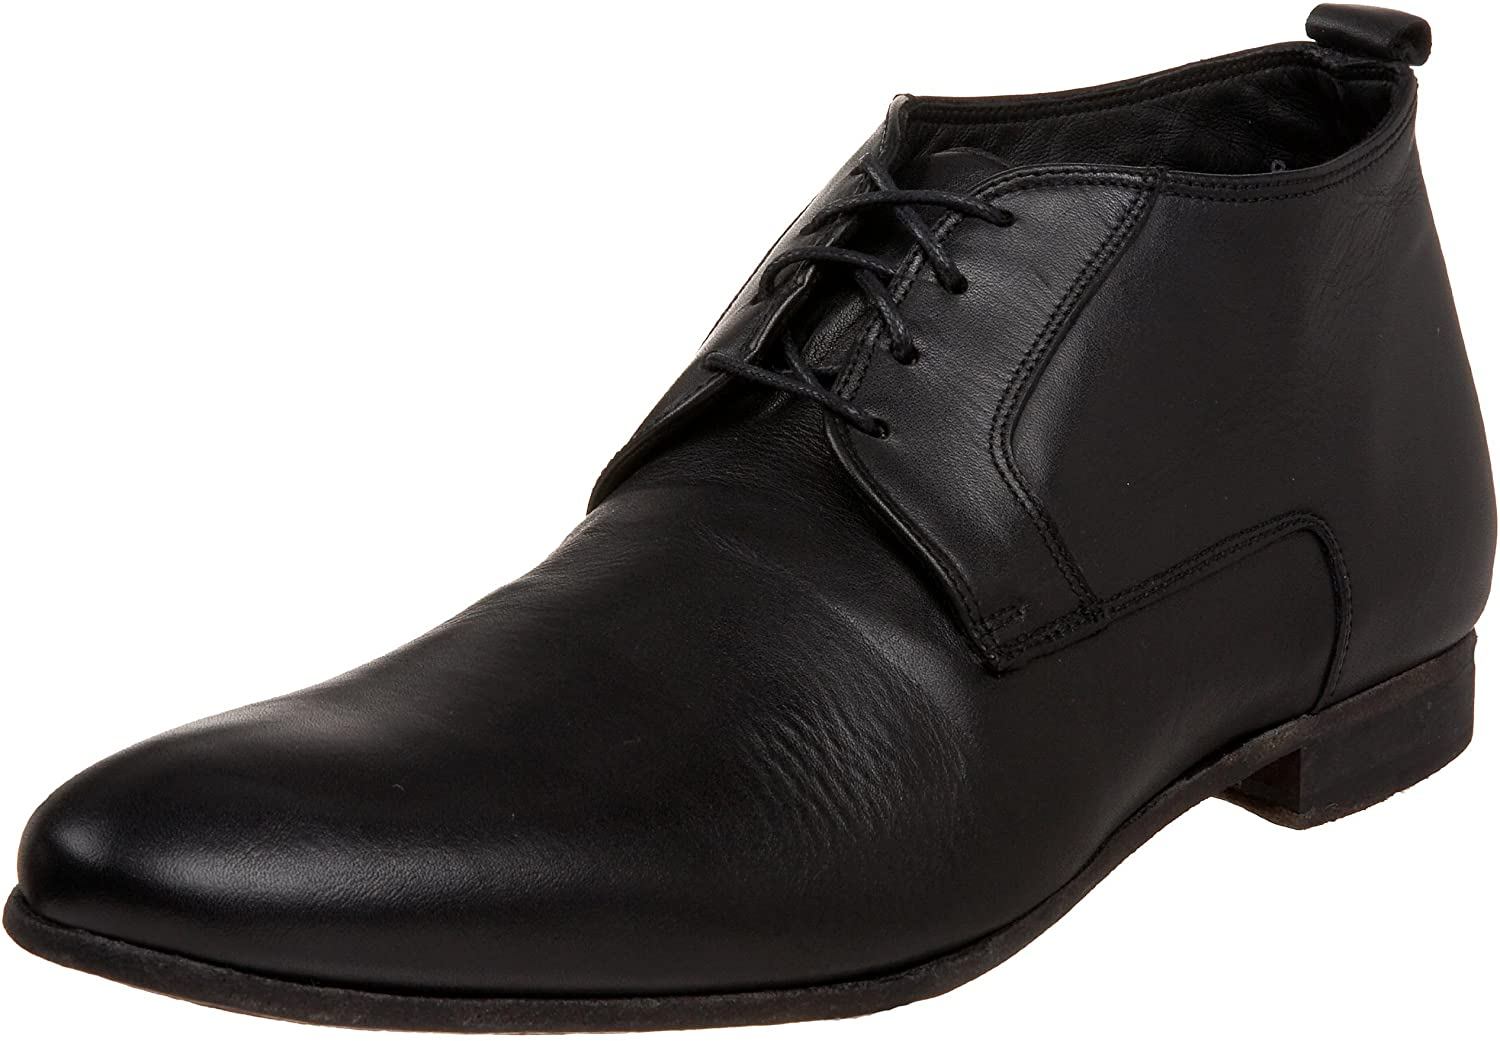 To Boot New York Men's Julian Lace Up Oxford,Black,9 M US